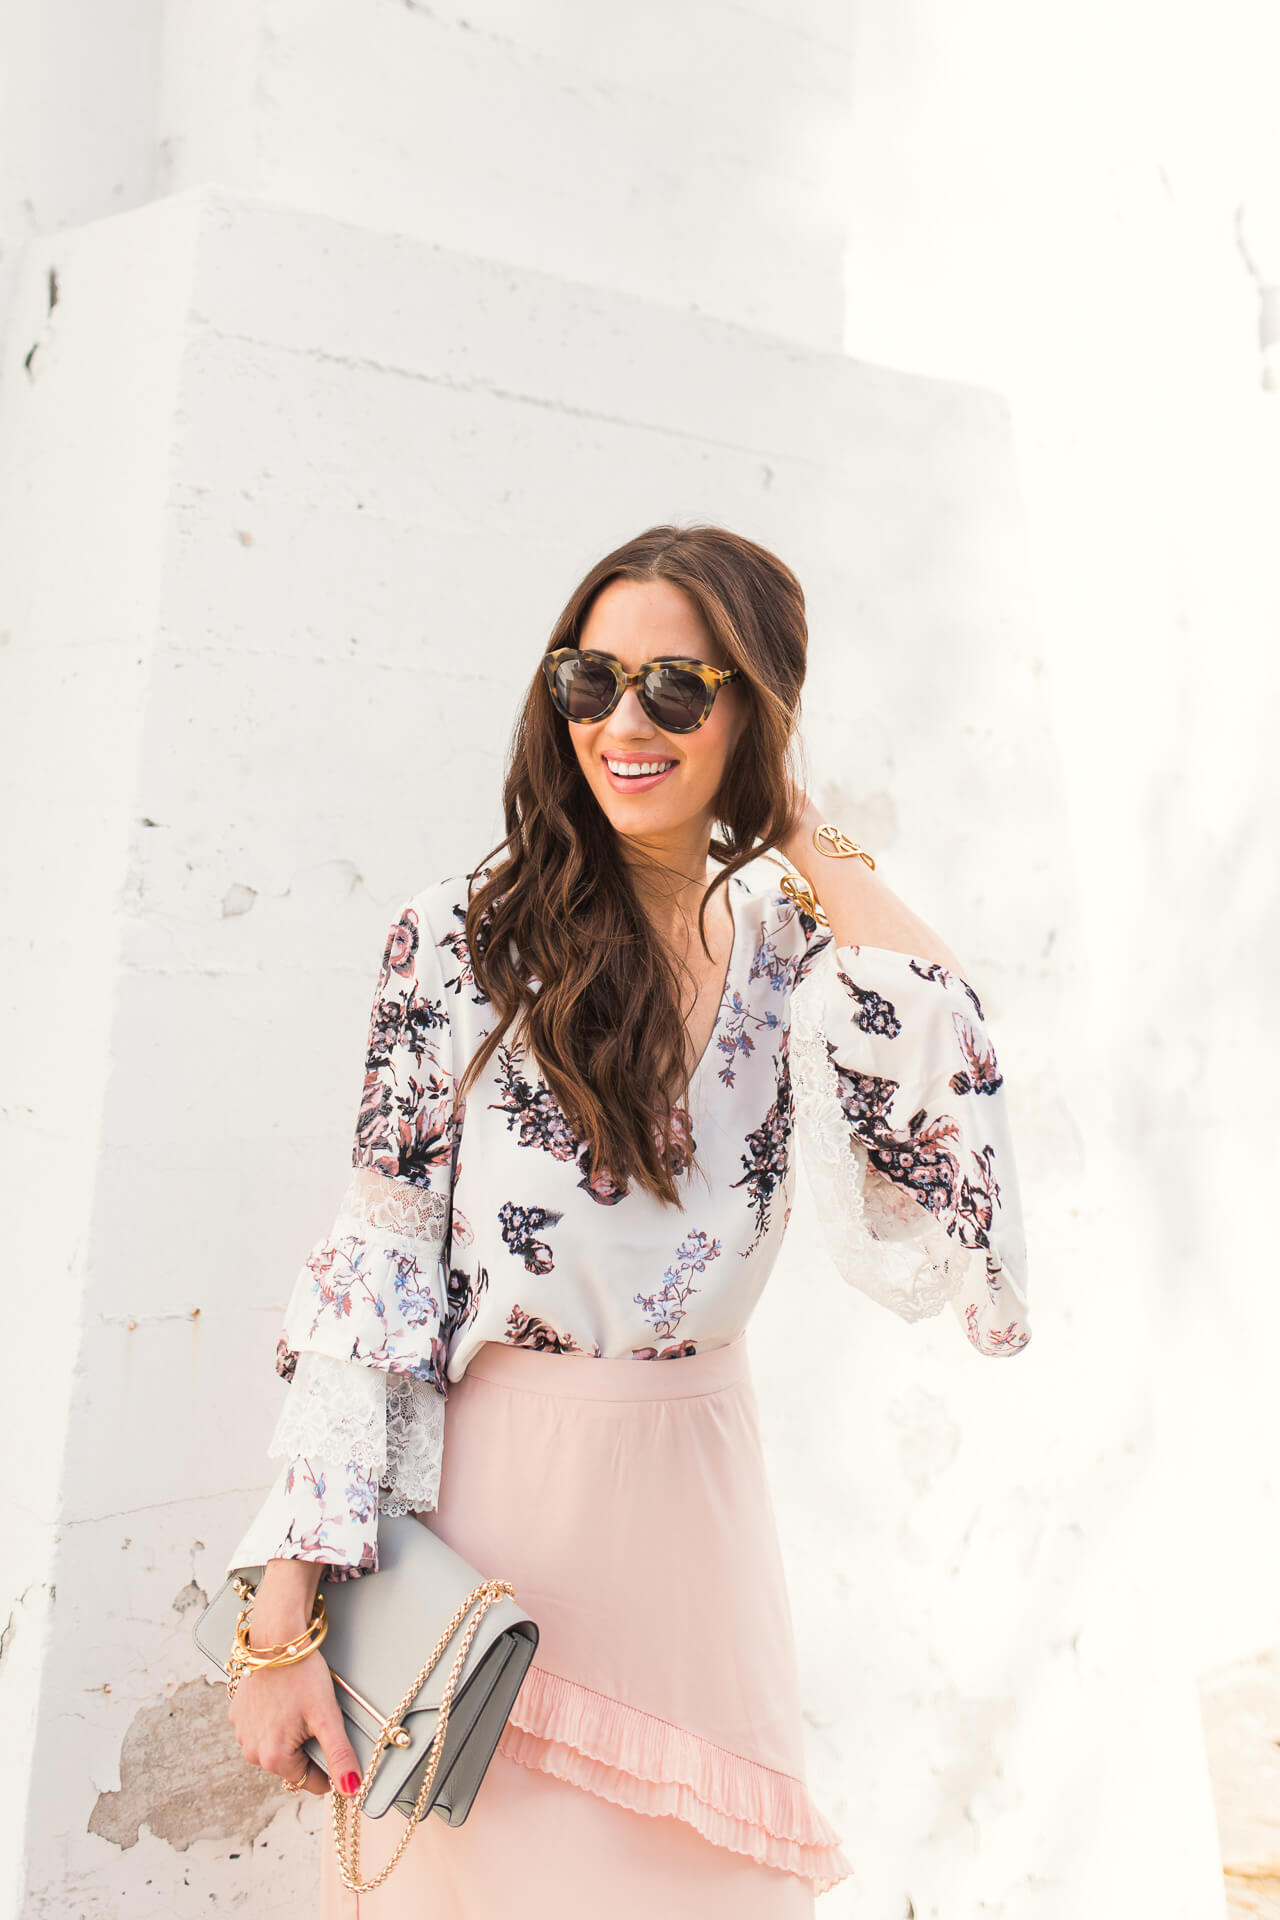 cute outfit inspiration - what to wear to a spring party or baby shower